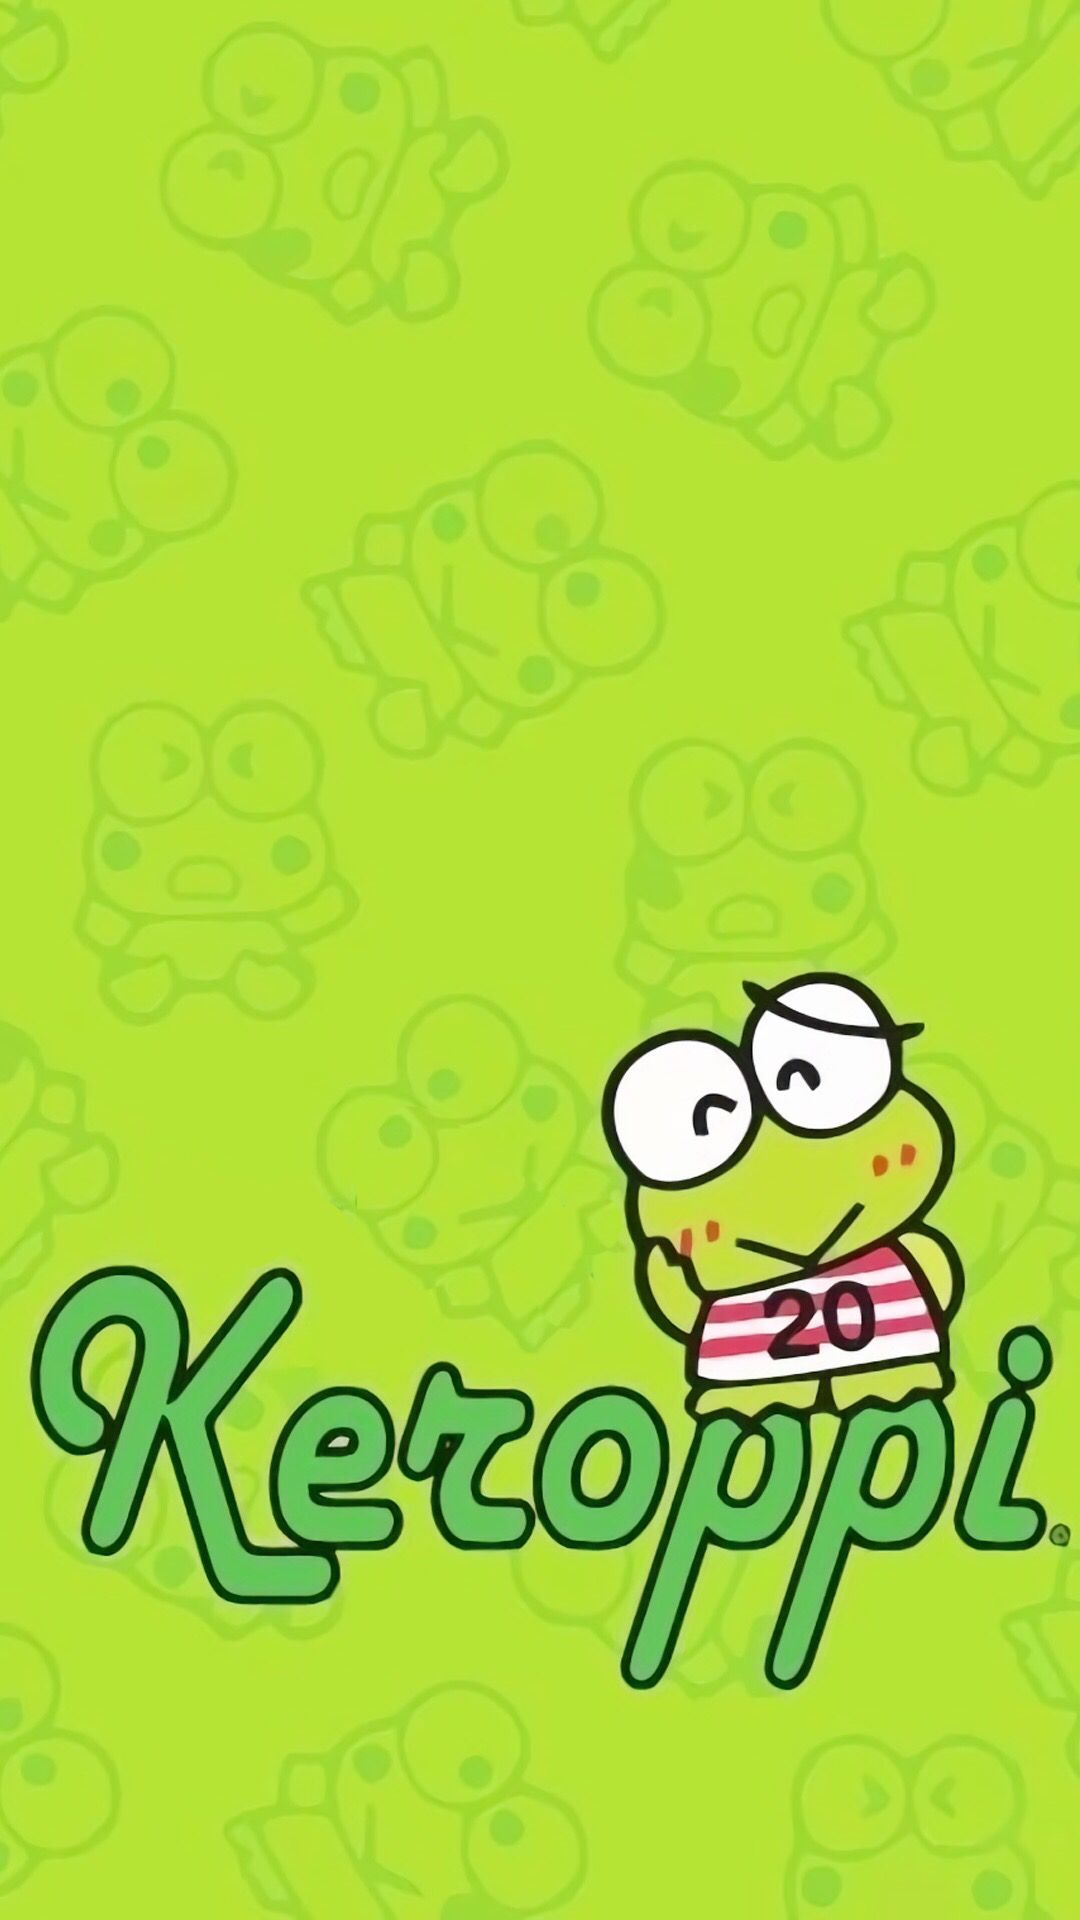 Keroppi Frame Kawaii Wallpaper Keroppi Wallpaper Dan Sanrio Wallpaper